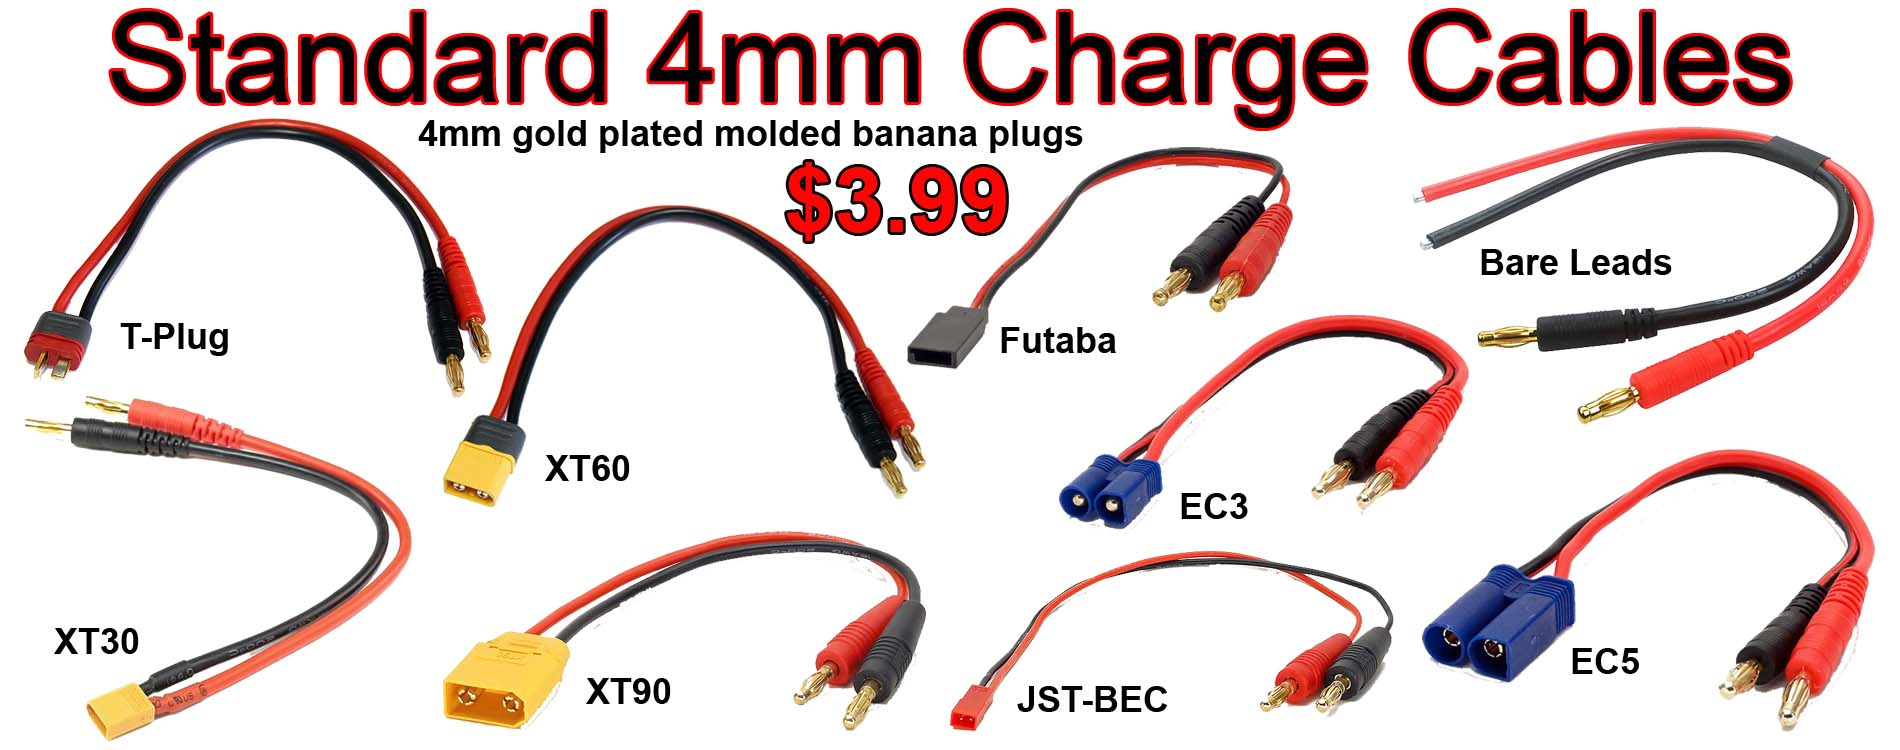 4mm Charge Cables